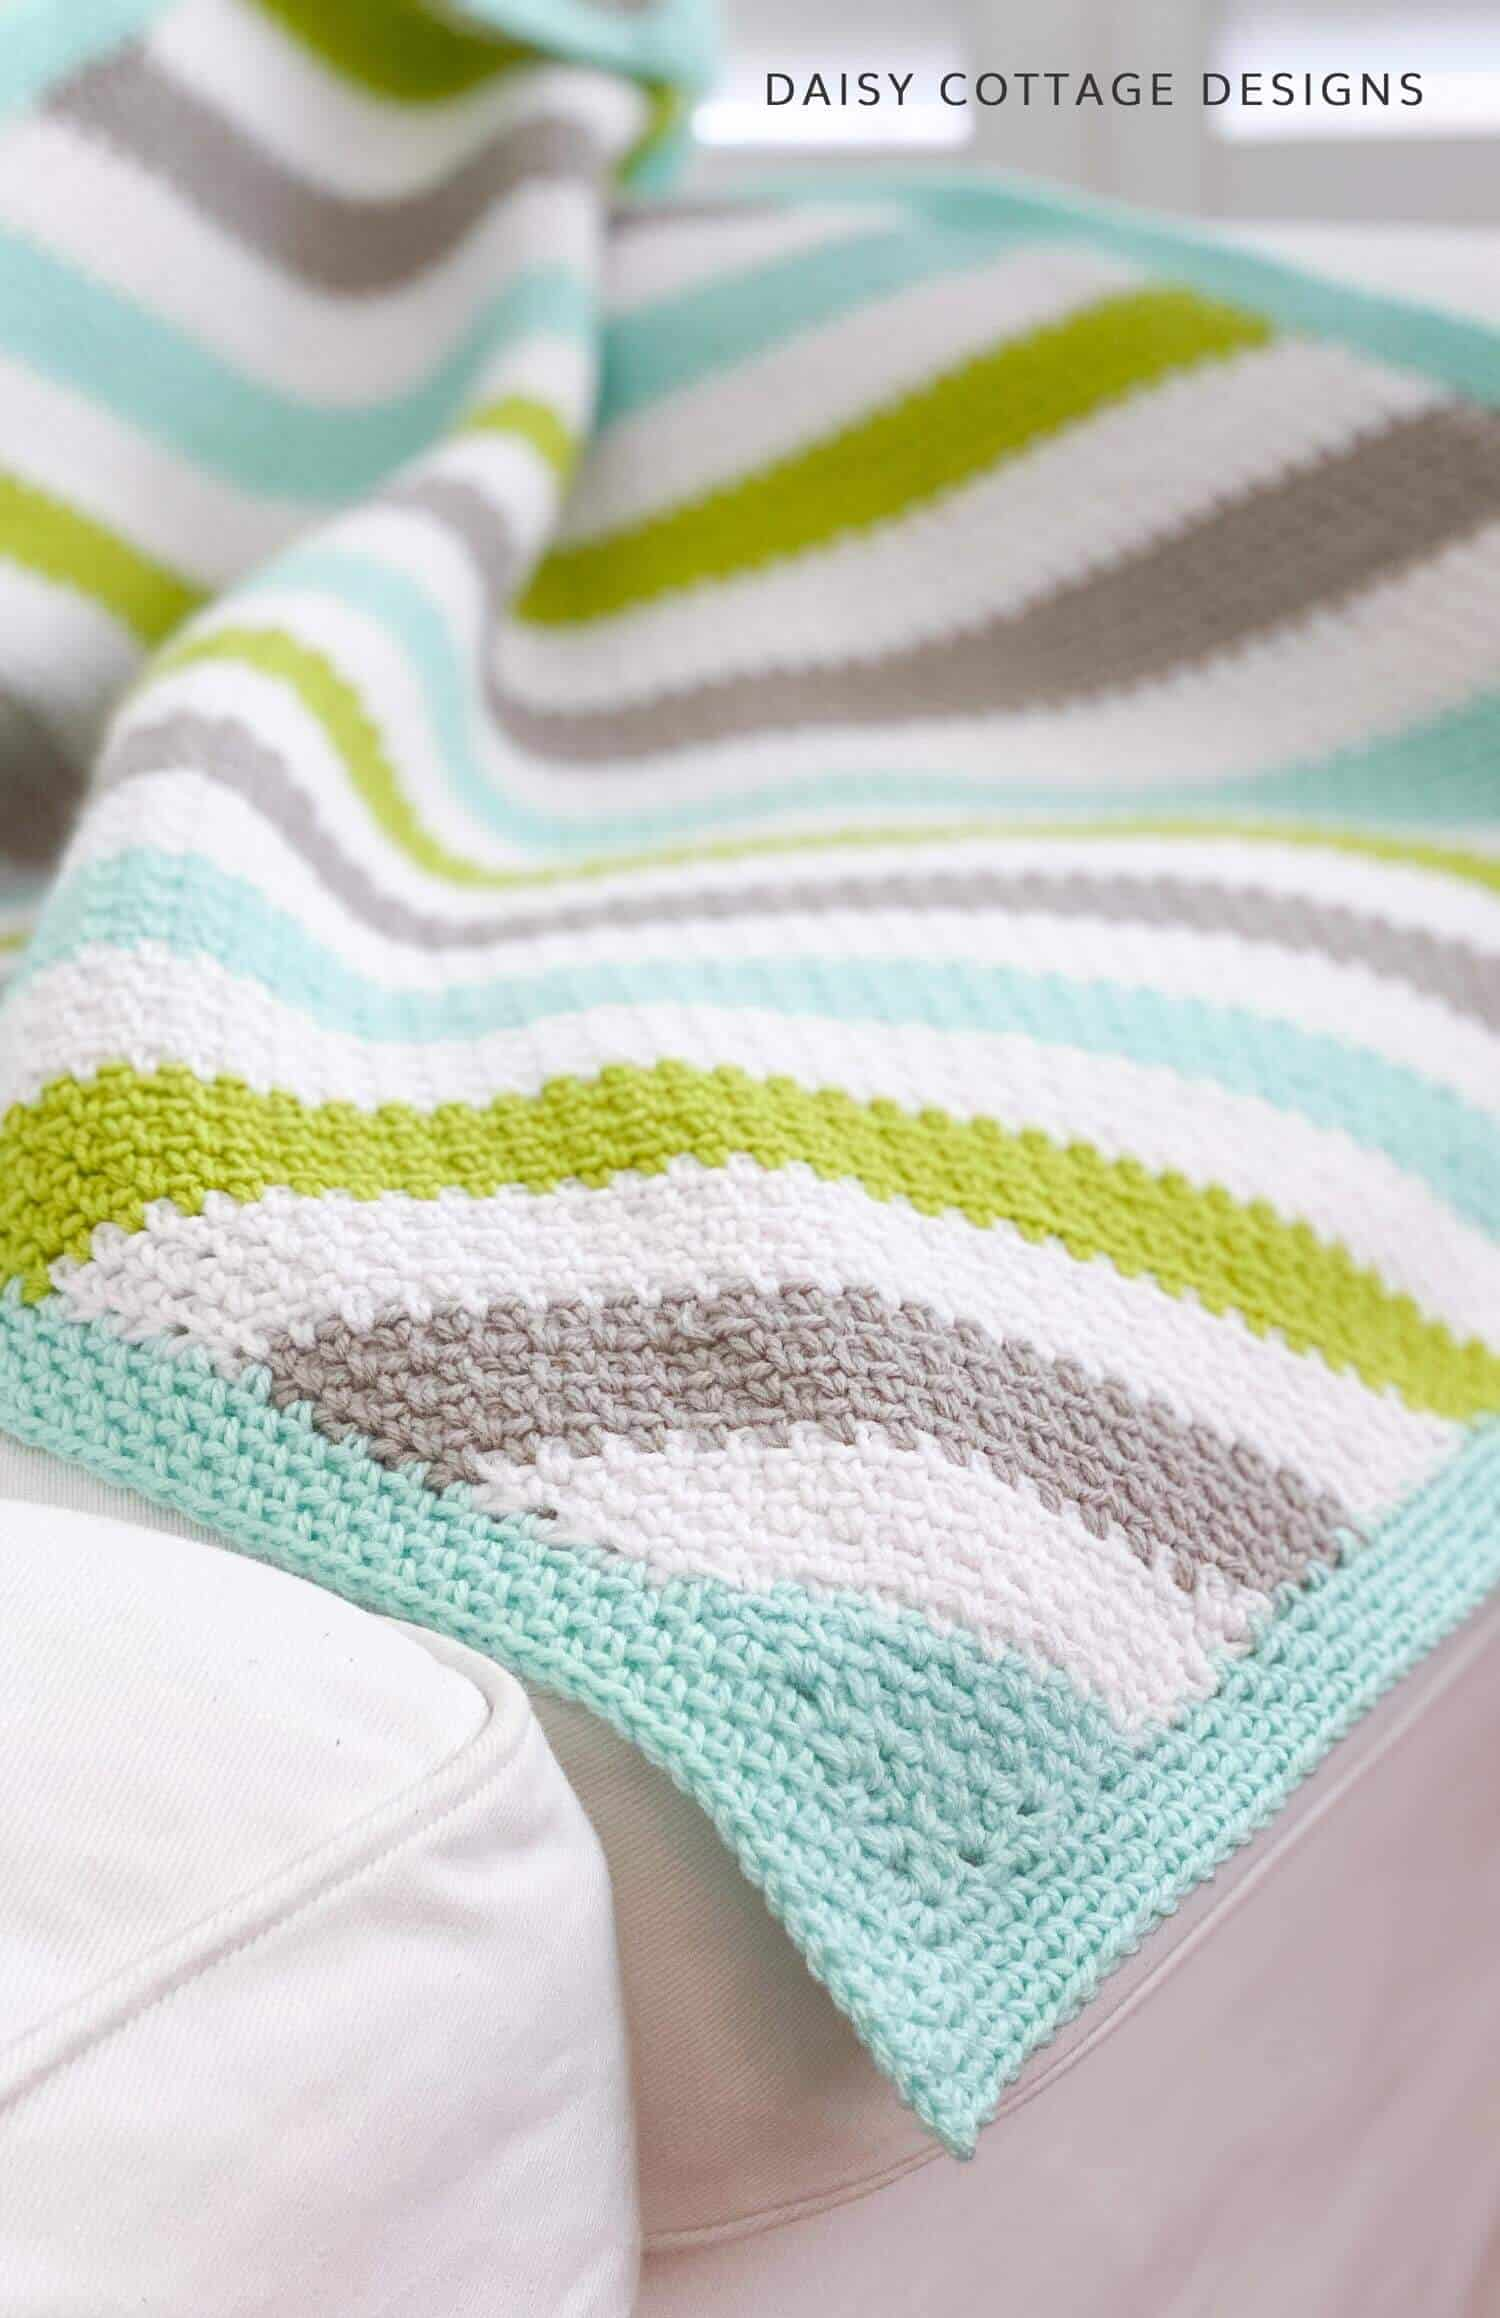 Fall in love with this corner to corner moss stitch crochet tutorial (aka the linen stitch & granite stitch). This crochet pattern is perfect for any skill level.